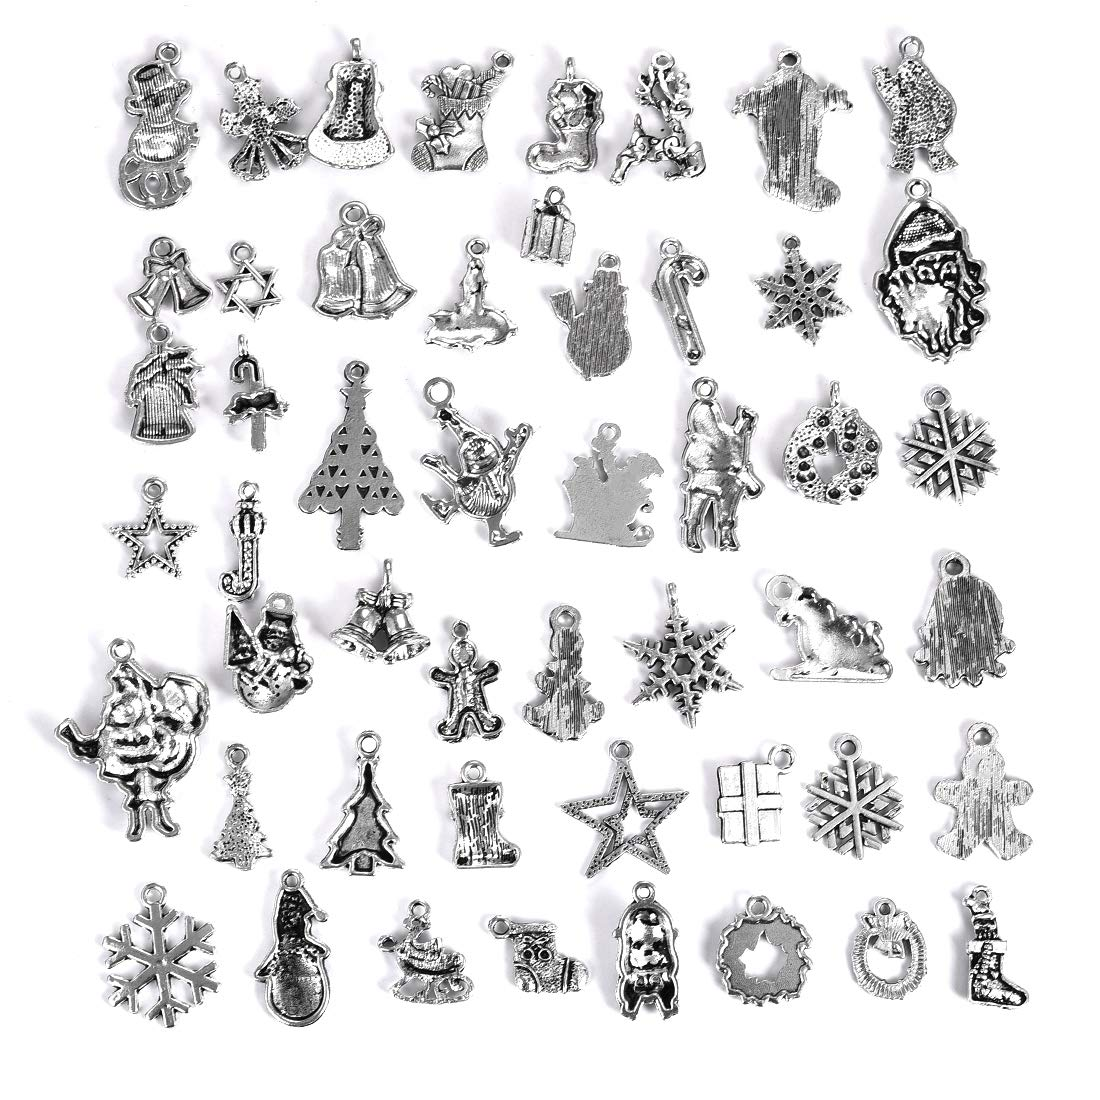 DROLE 60Pcs Halloween Charms Pendant Beads for Jewelry Making Findings Antique Silver Skull Ghost Pumpkin Charm Pendant for DIY Crafting